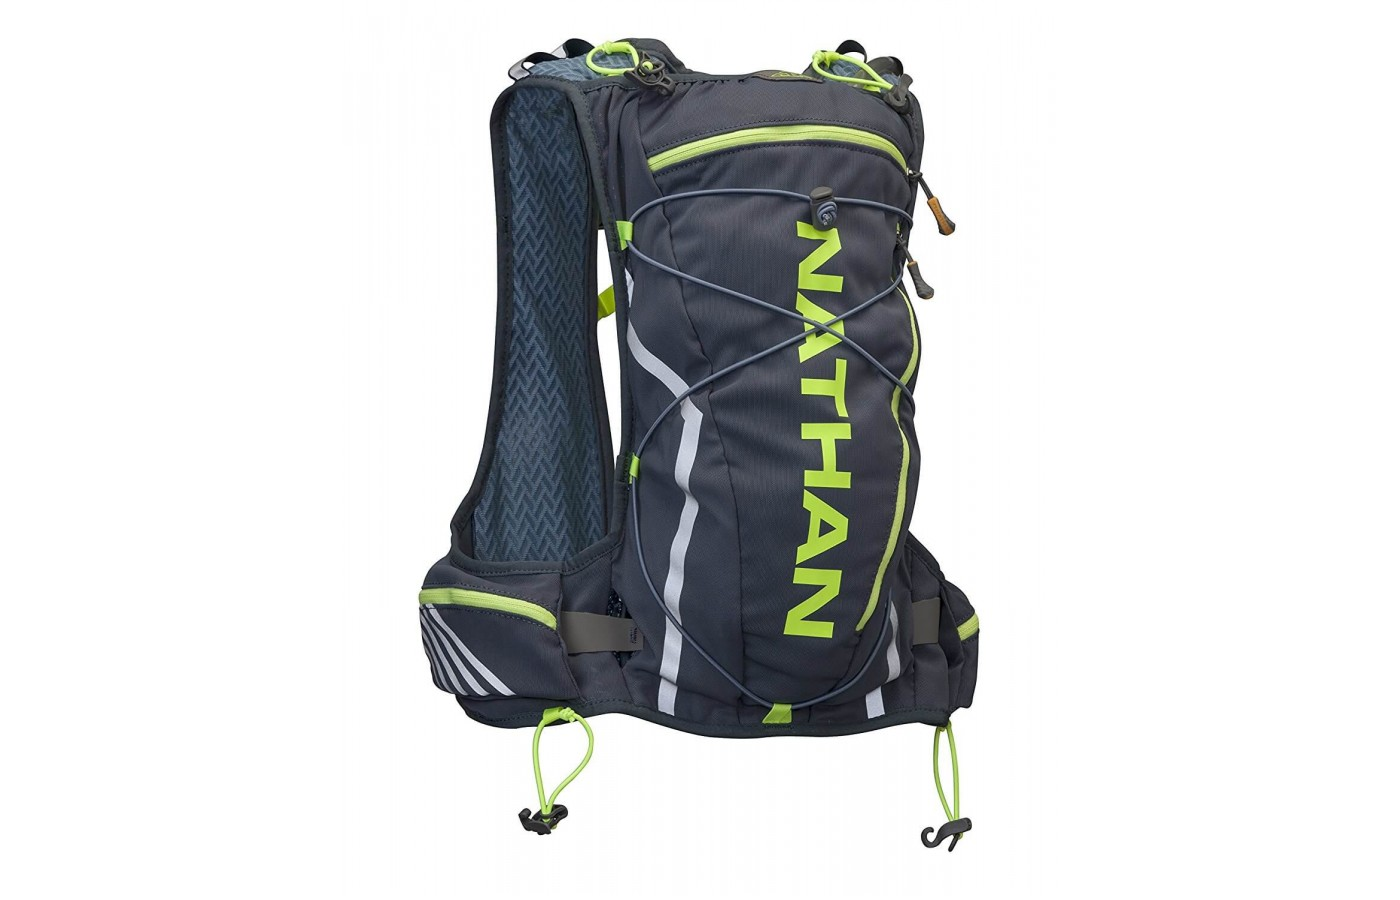 The Nathan Vaporcloud is a small water vest that can hold a surprising amount of water.